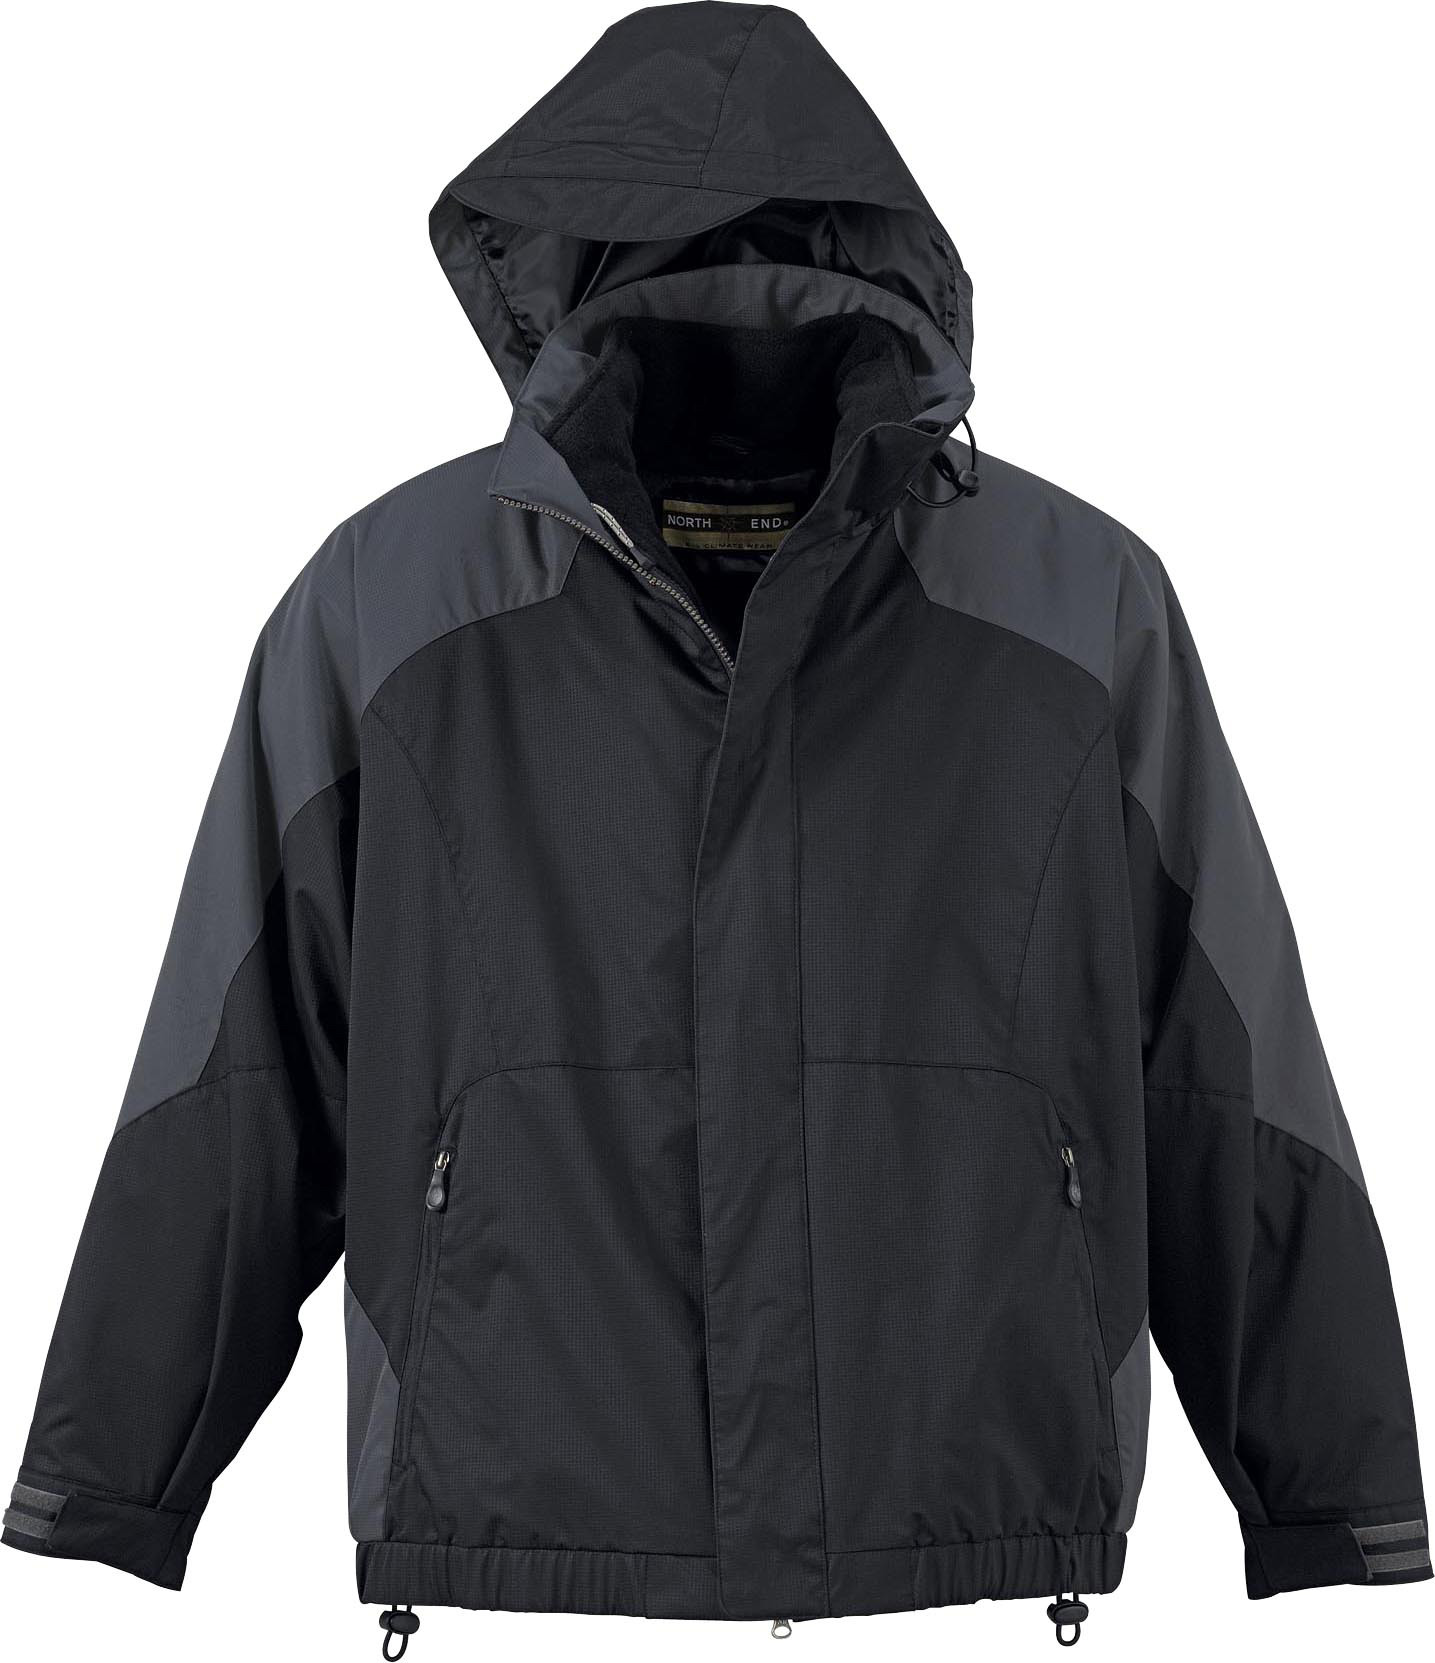 Ash City System Jackets 88126 - Men's Techno Performance ...